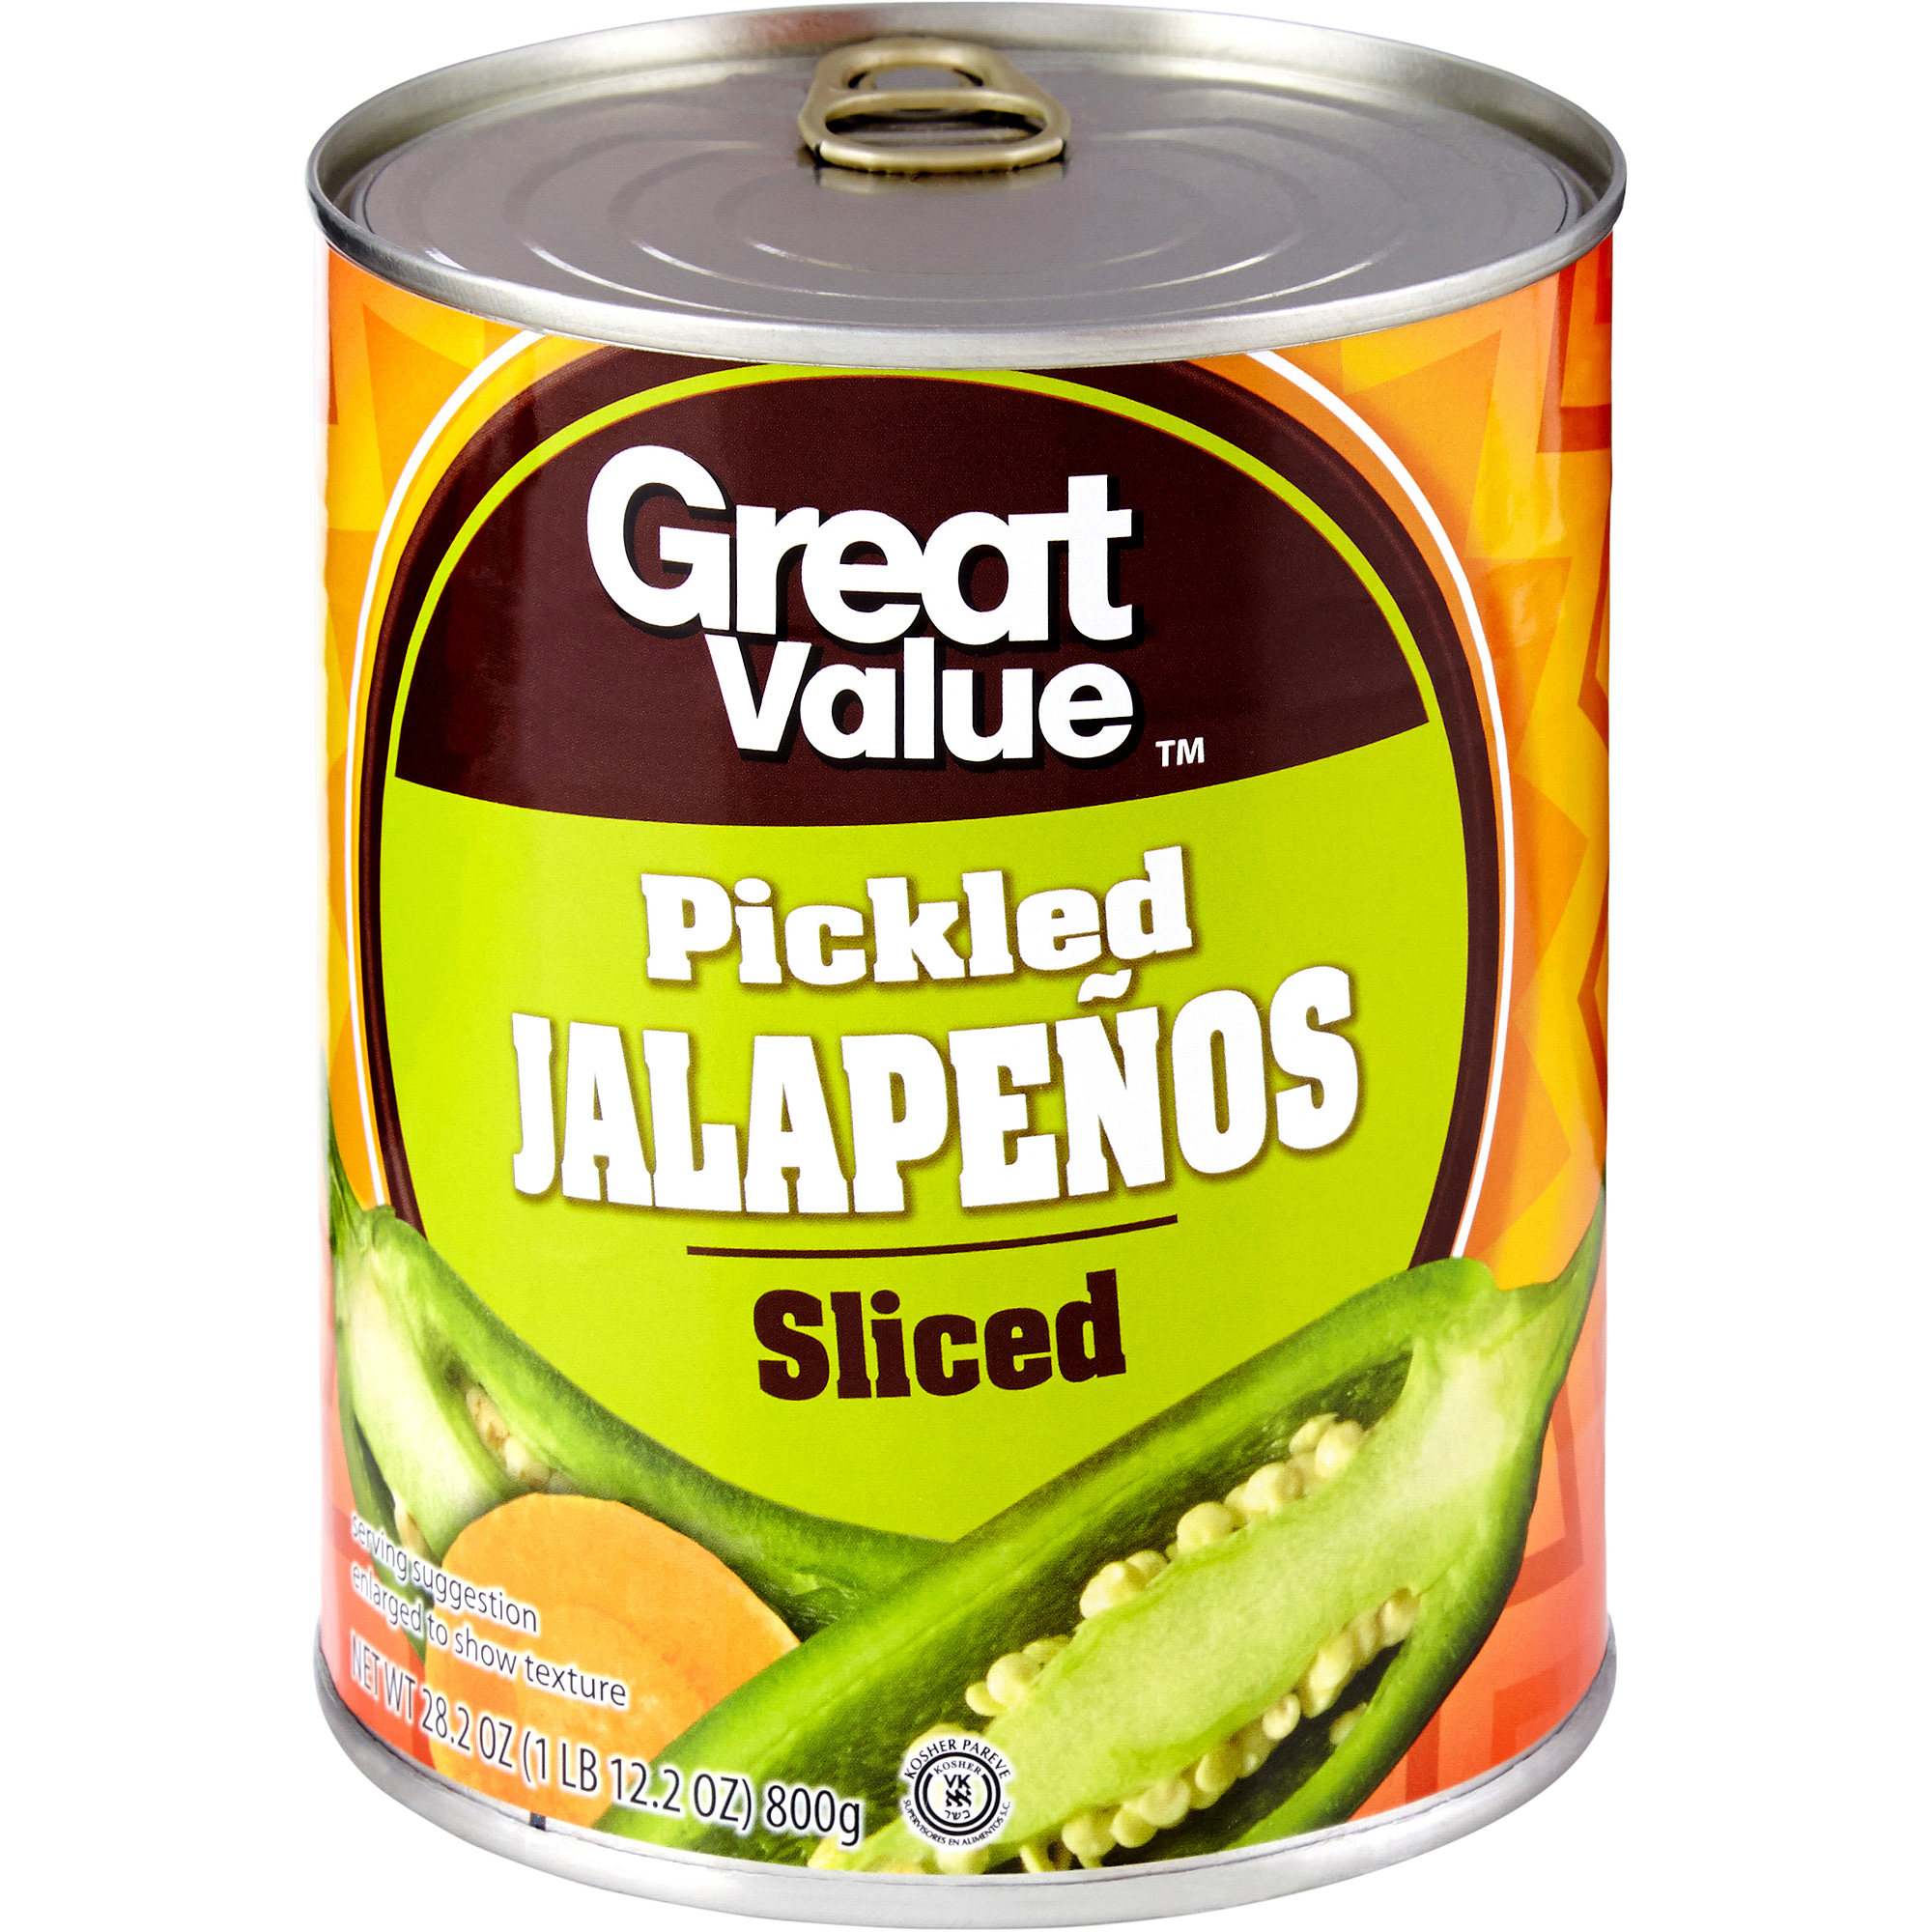 Great Value Sliced Jalapenos, 27.5 oz